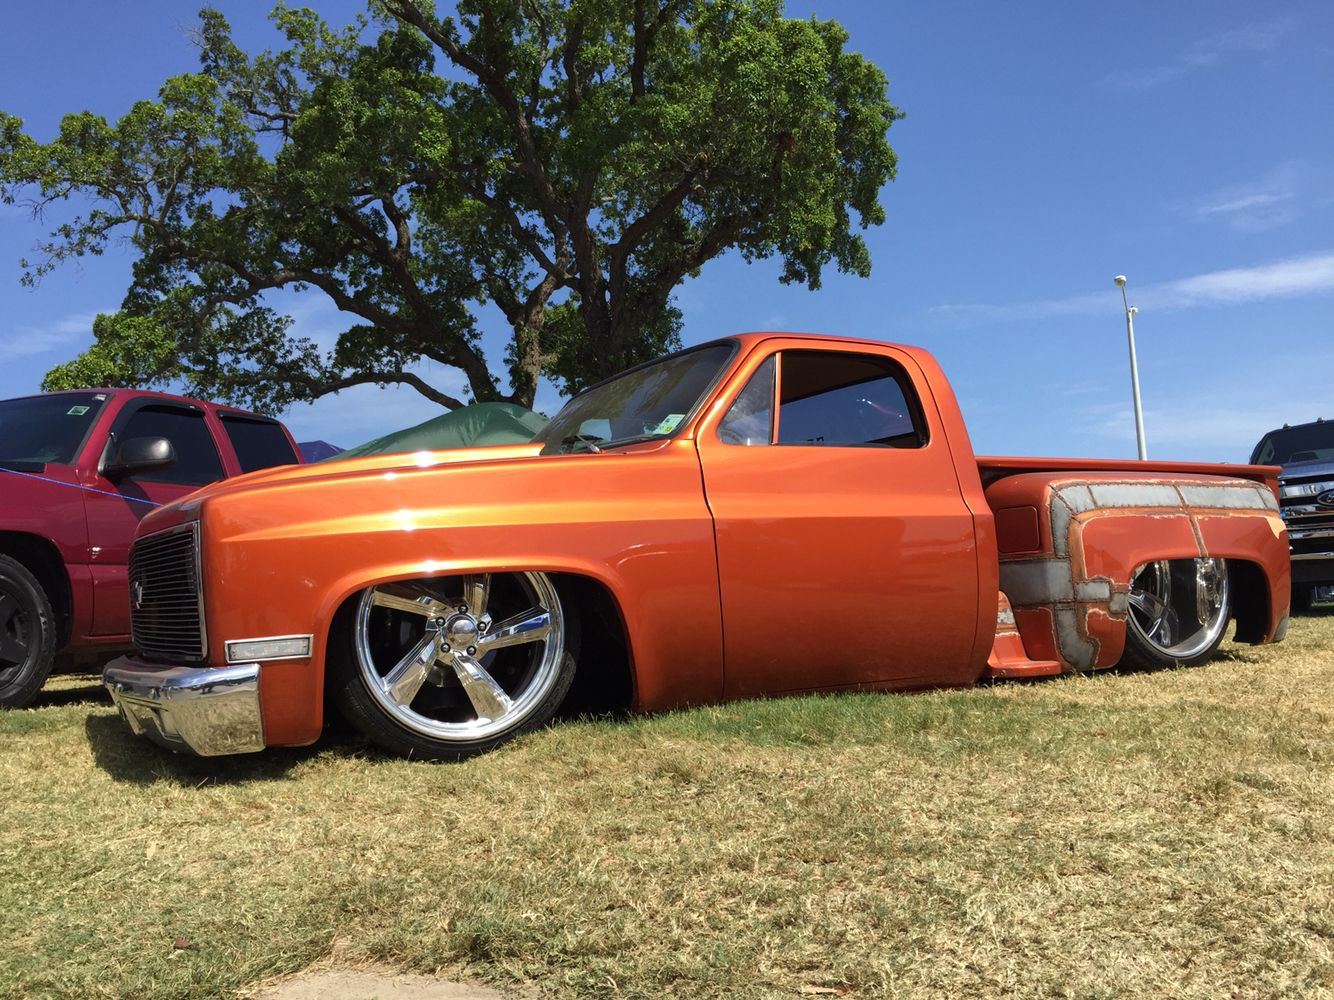 Chopped top c10, with raised step side | Truck - Chevy Post 1955 ...